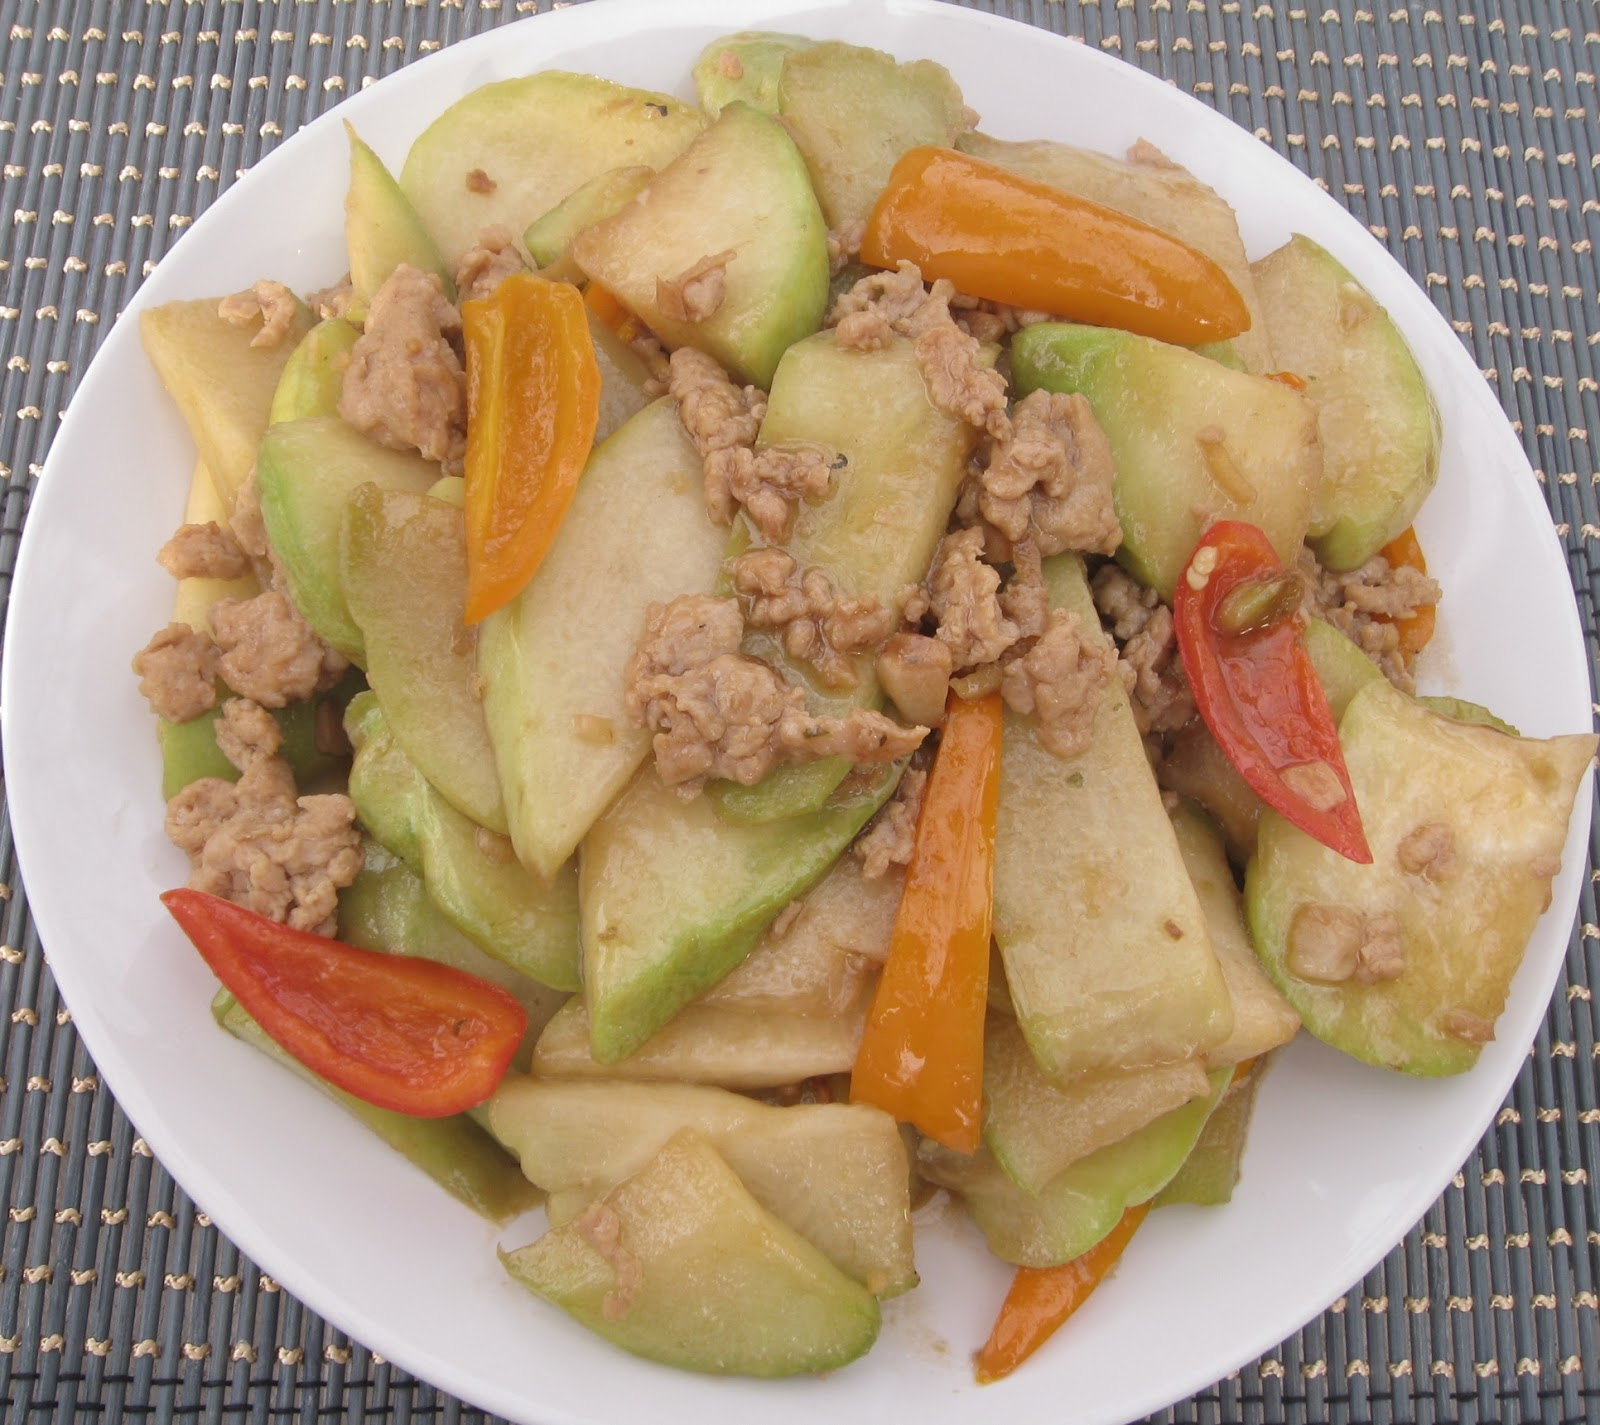 My Asian Kitchen: Stir-fry Chayote with Minced Chicken in